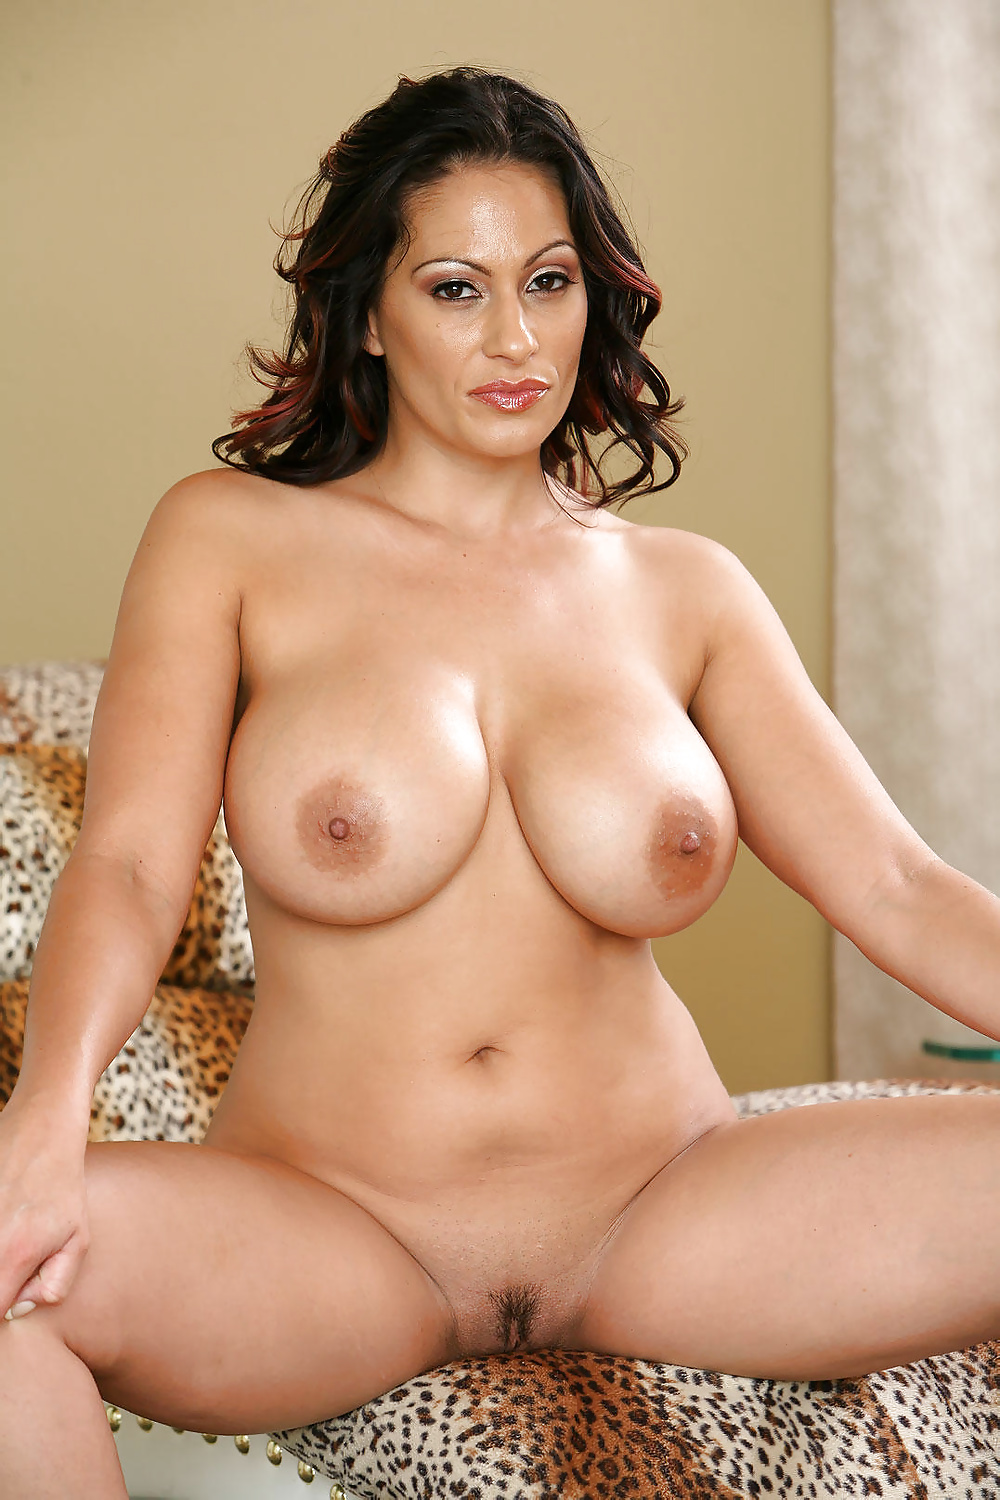 Madhori hot naked photo, indonesia lips pussy